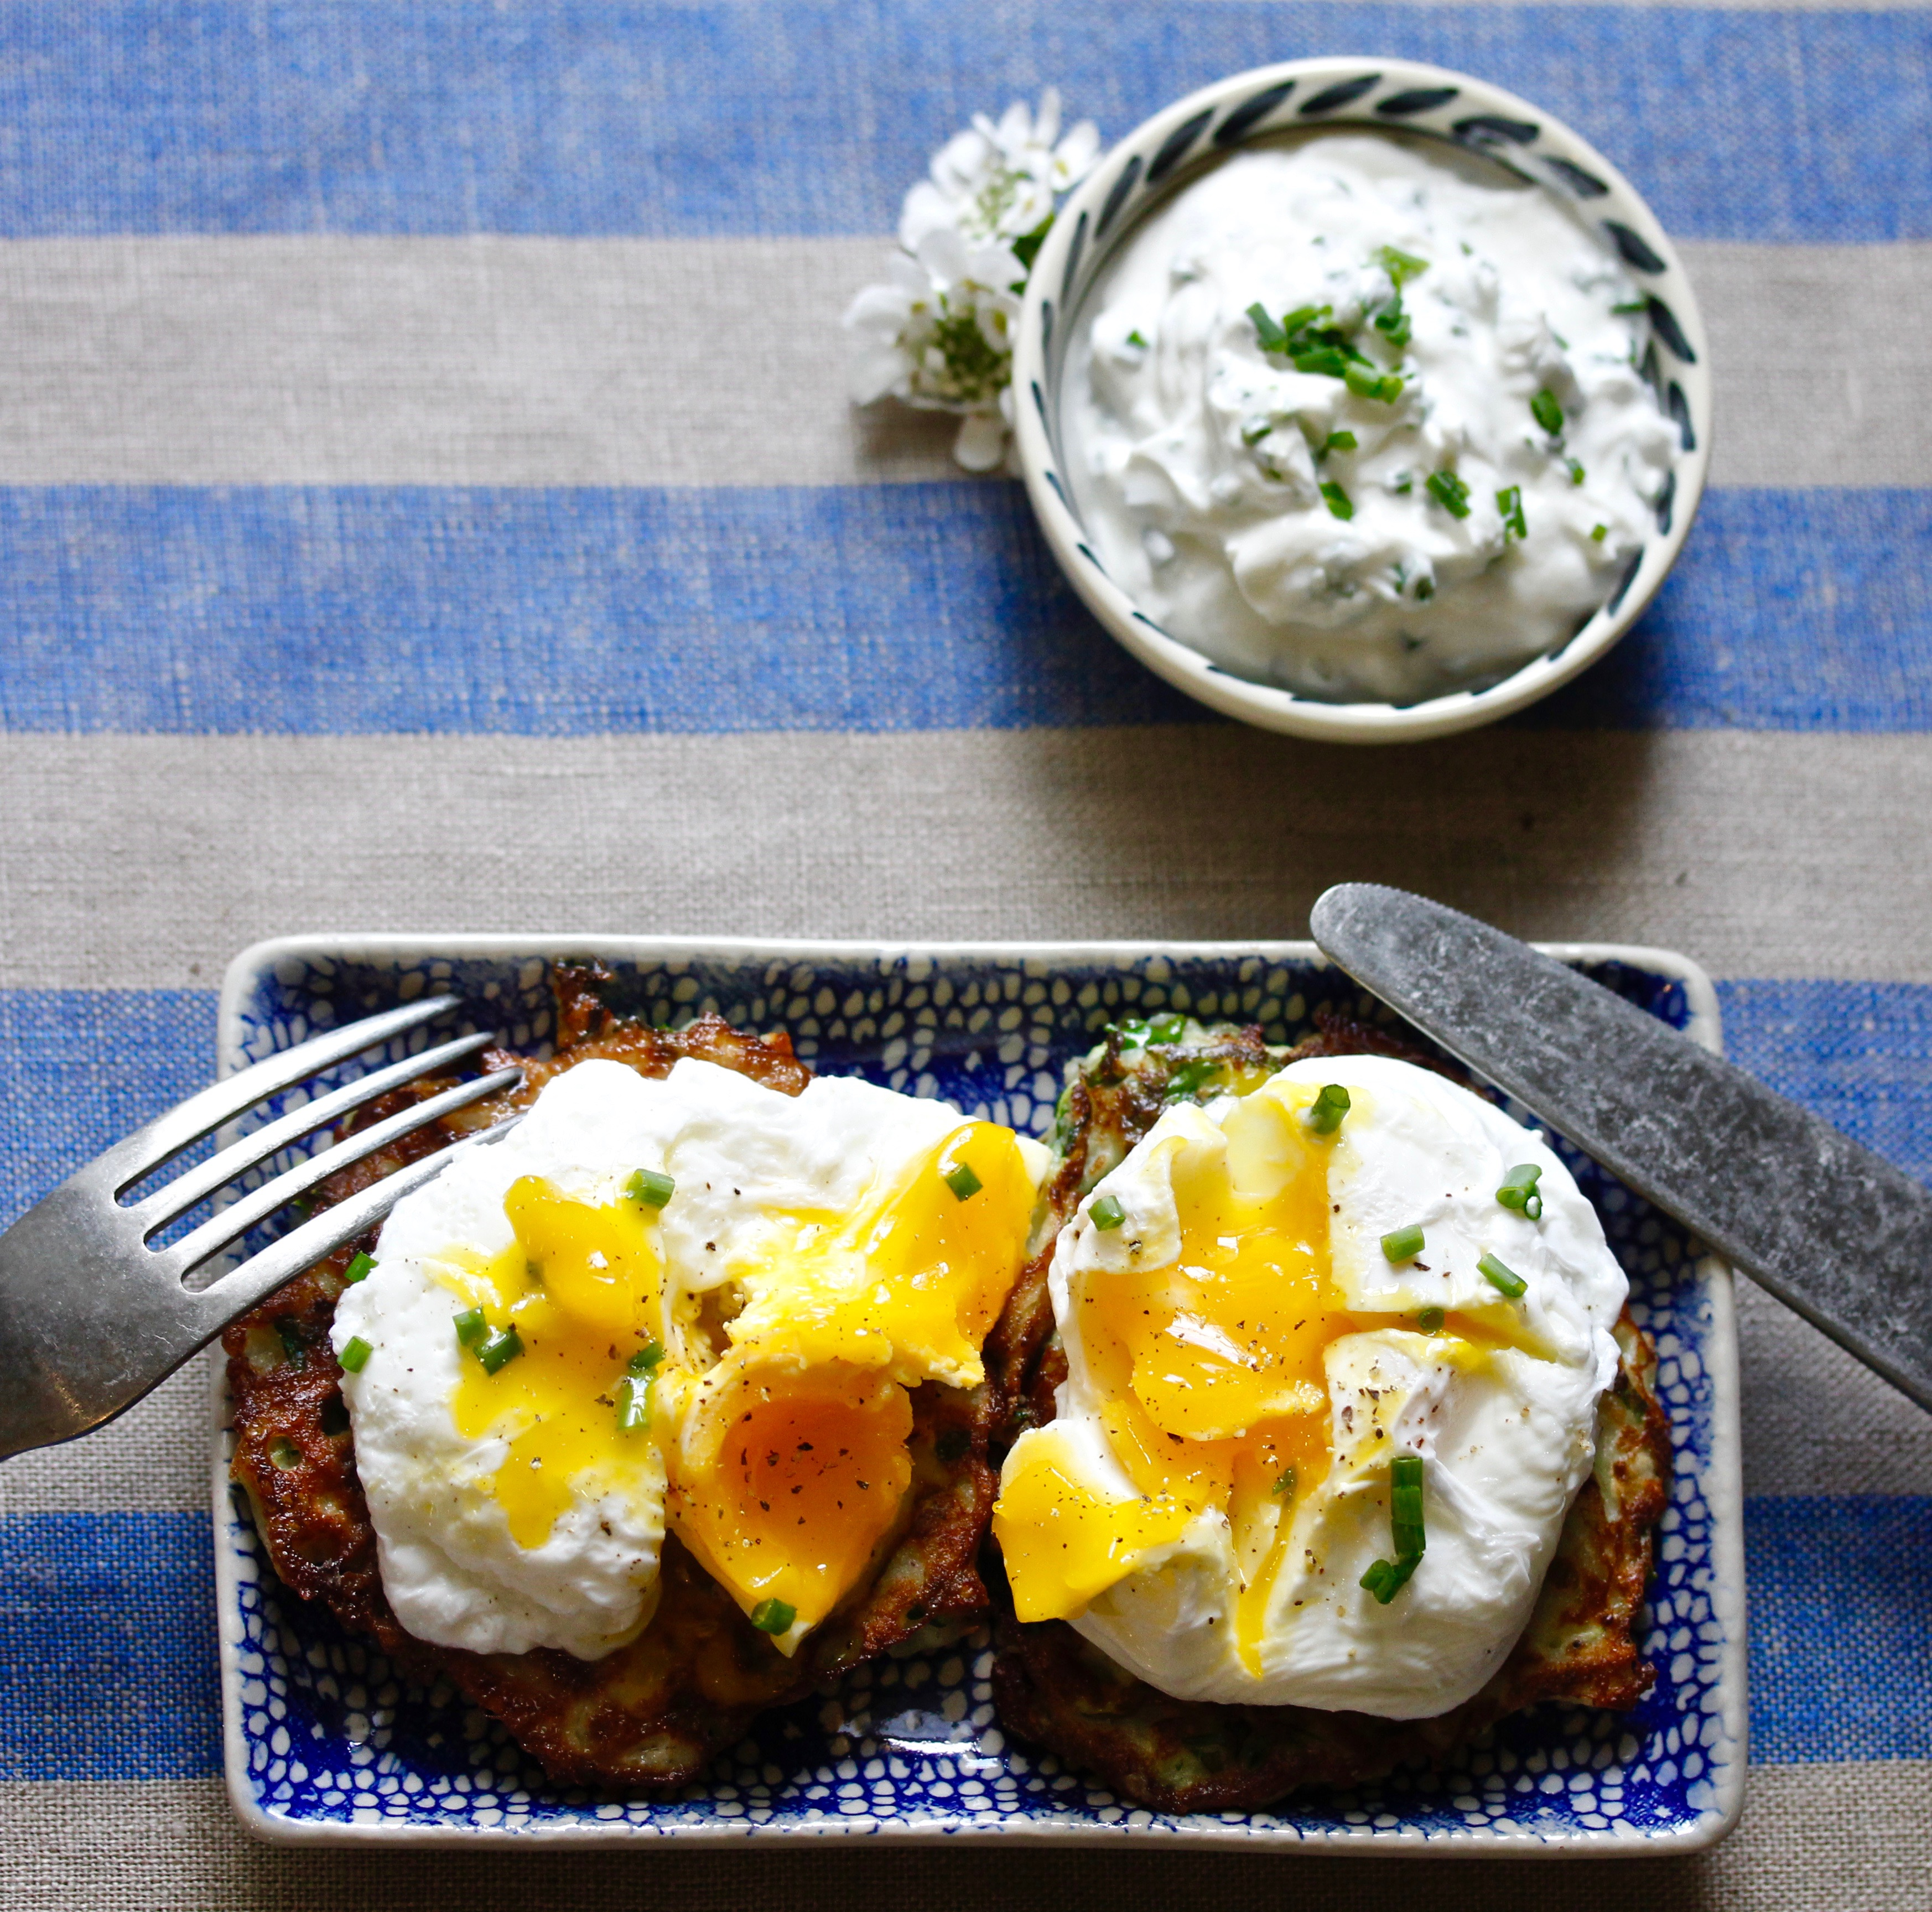 Kale Zucchini Latkes with Poached Eggs and Chive Yogurt